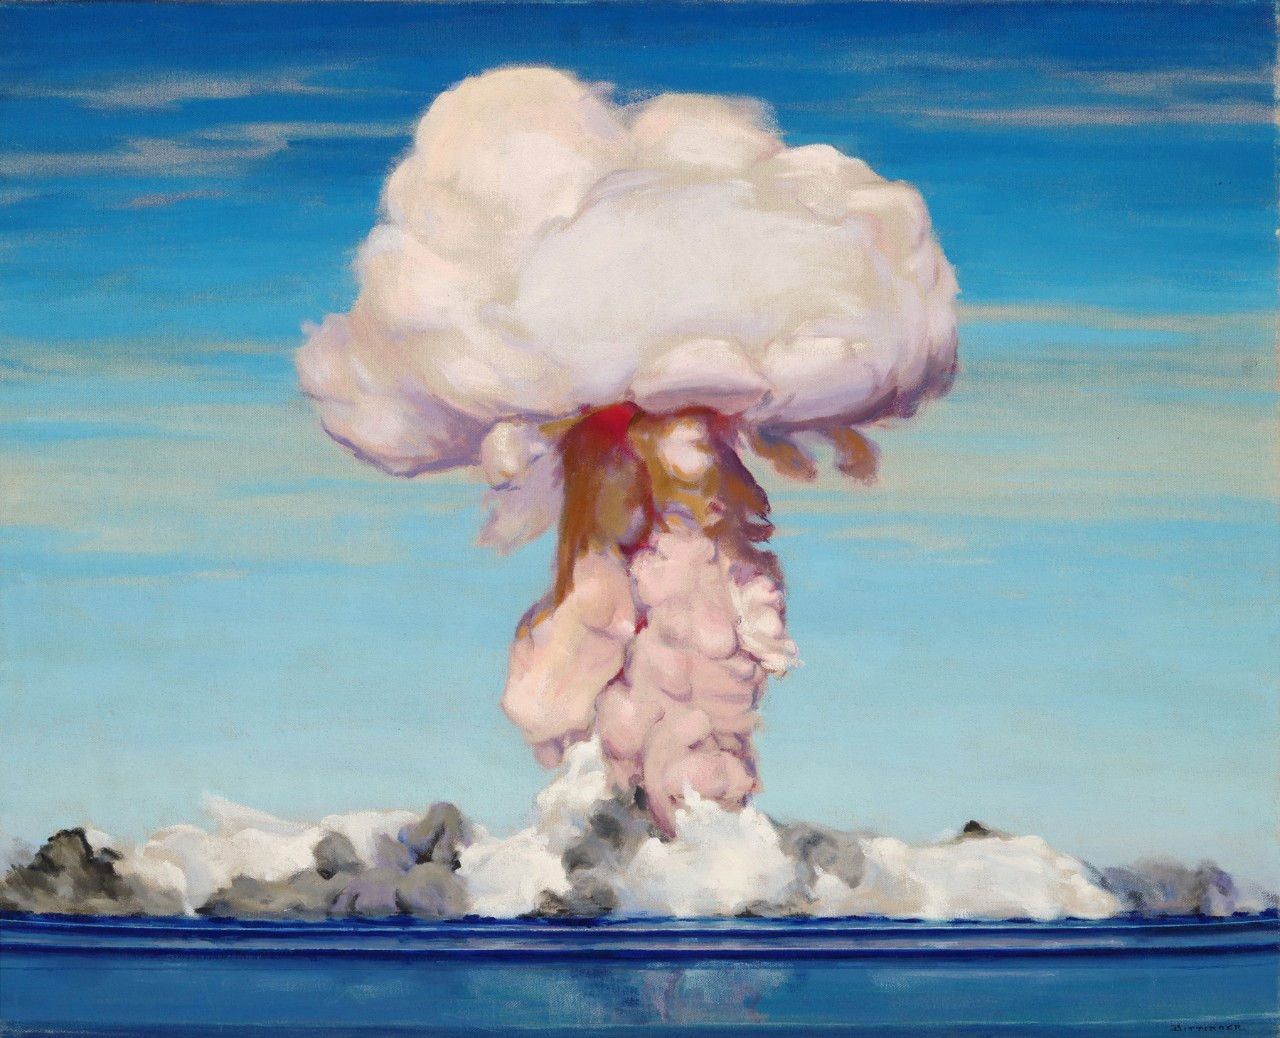 A pink mushroom cloud rises from the lagoon